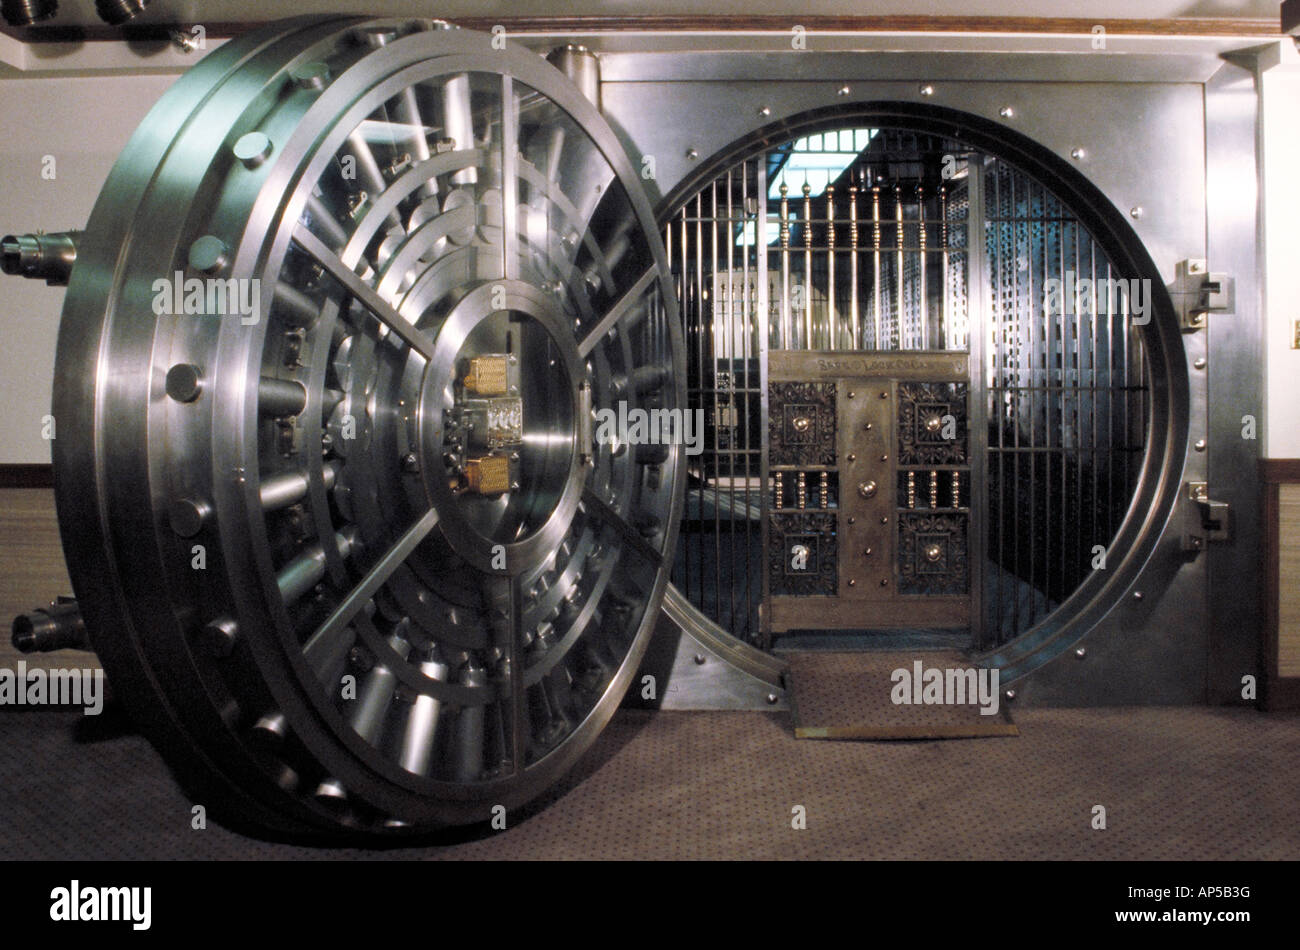 Steel door of a bank vault. - Stock Image